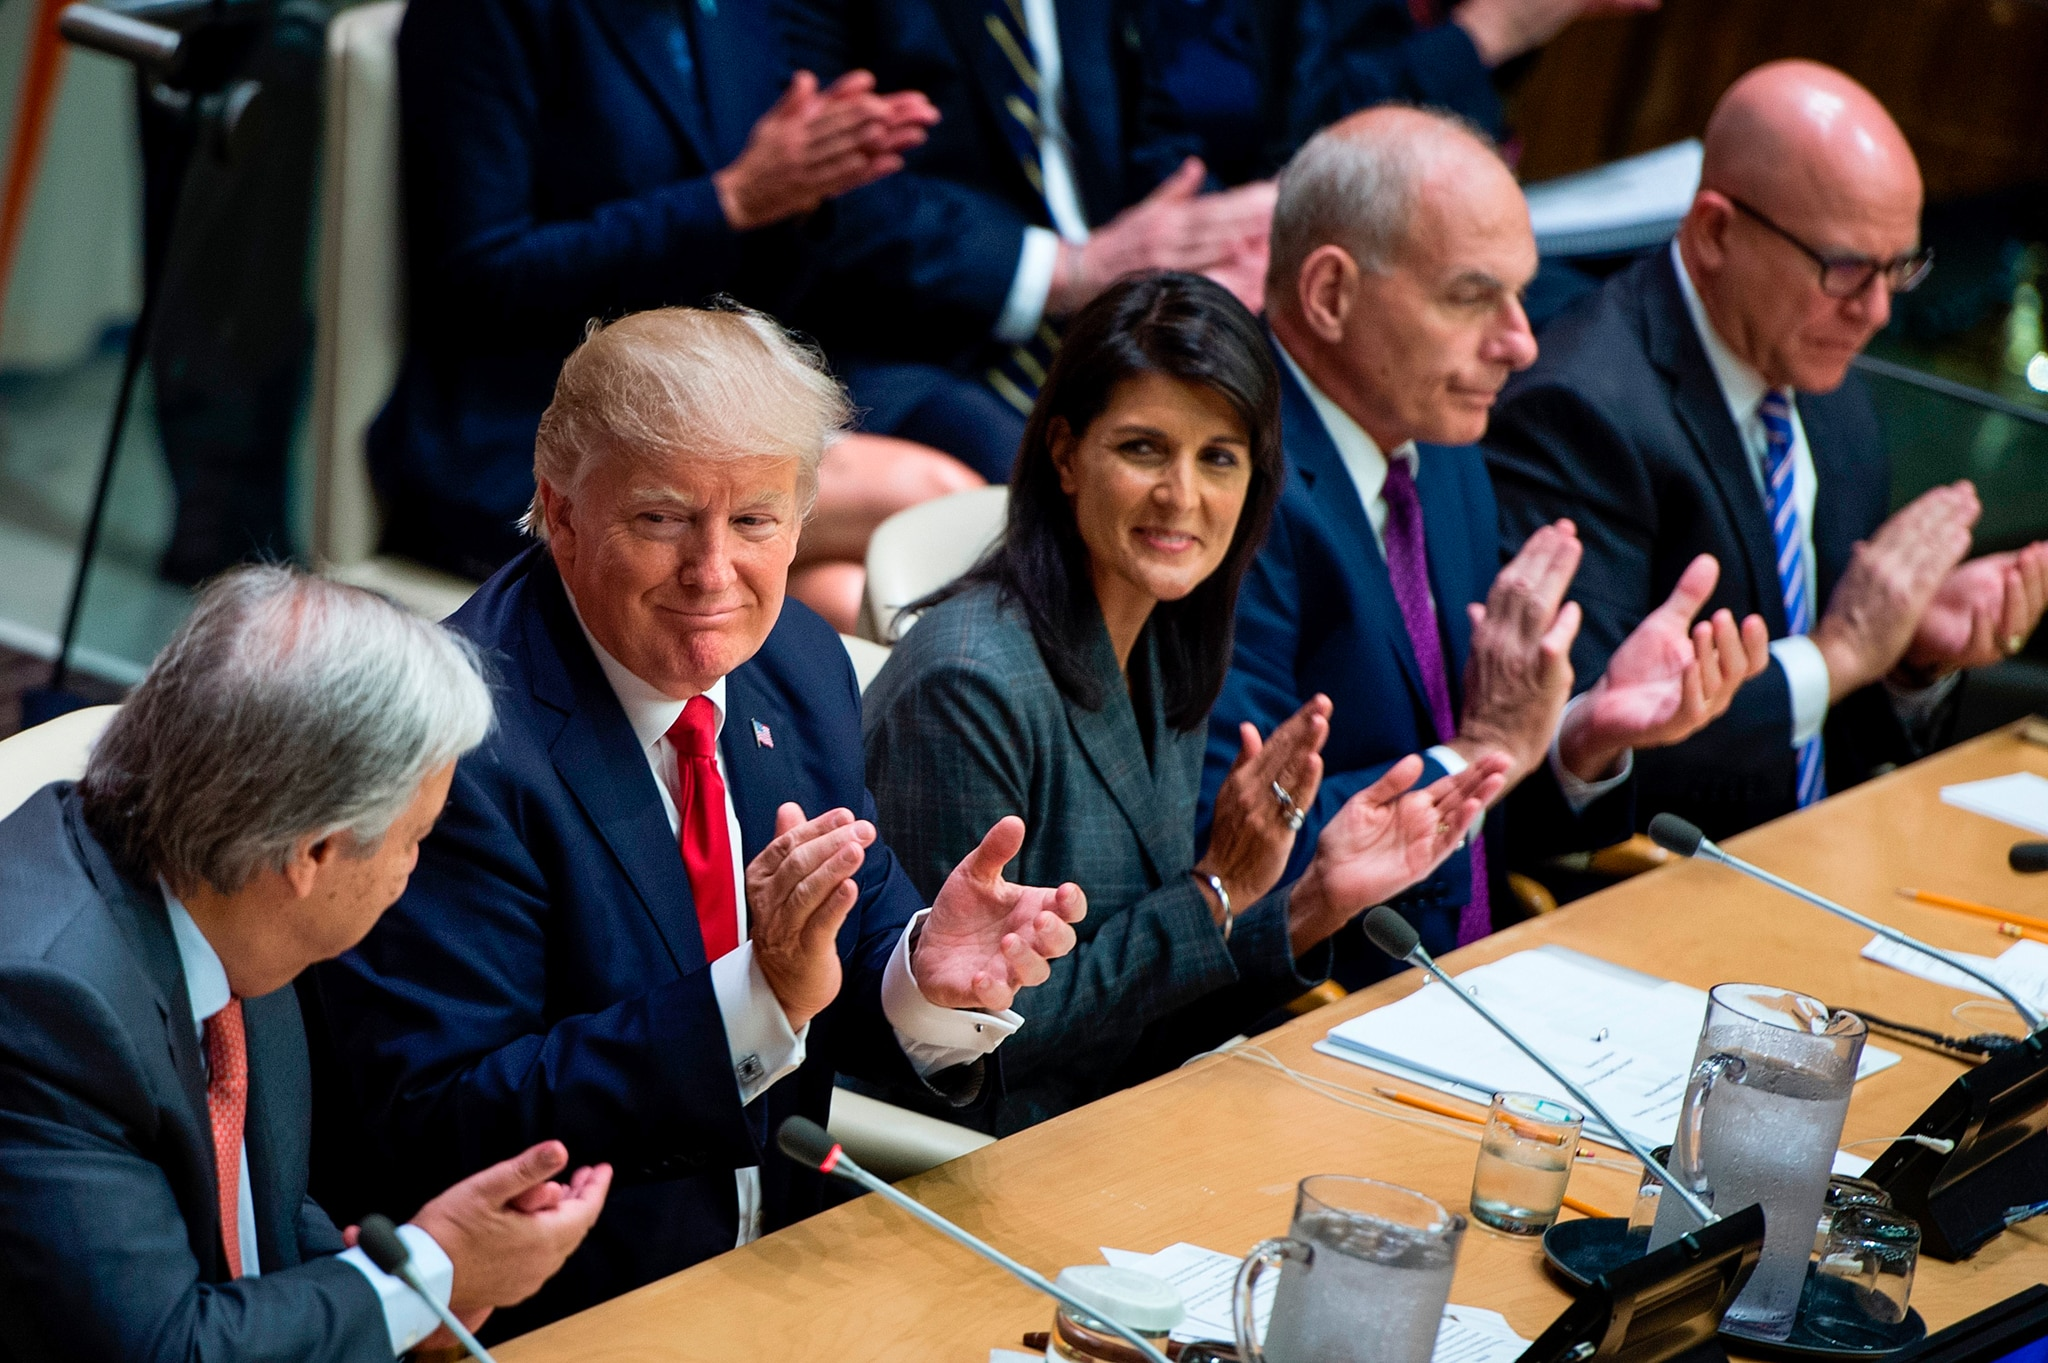 Five people sitting side by side clapping (© Brendan Smialowski/AFP/Getty Images)